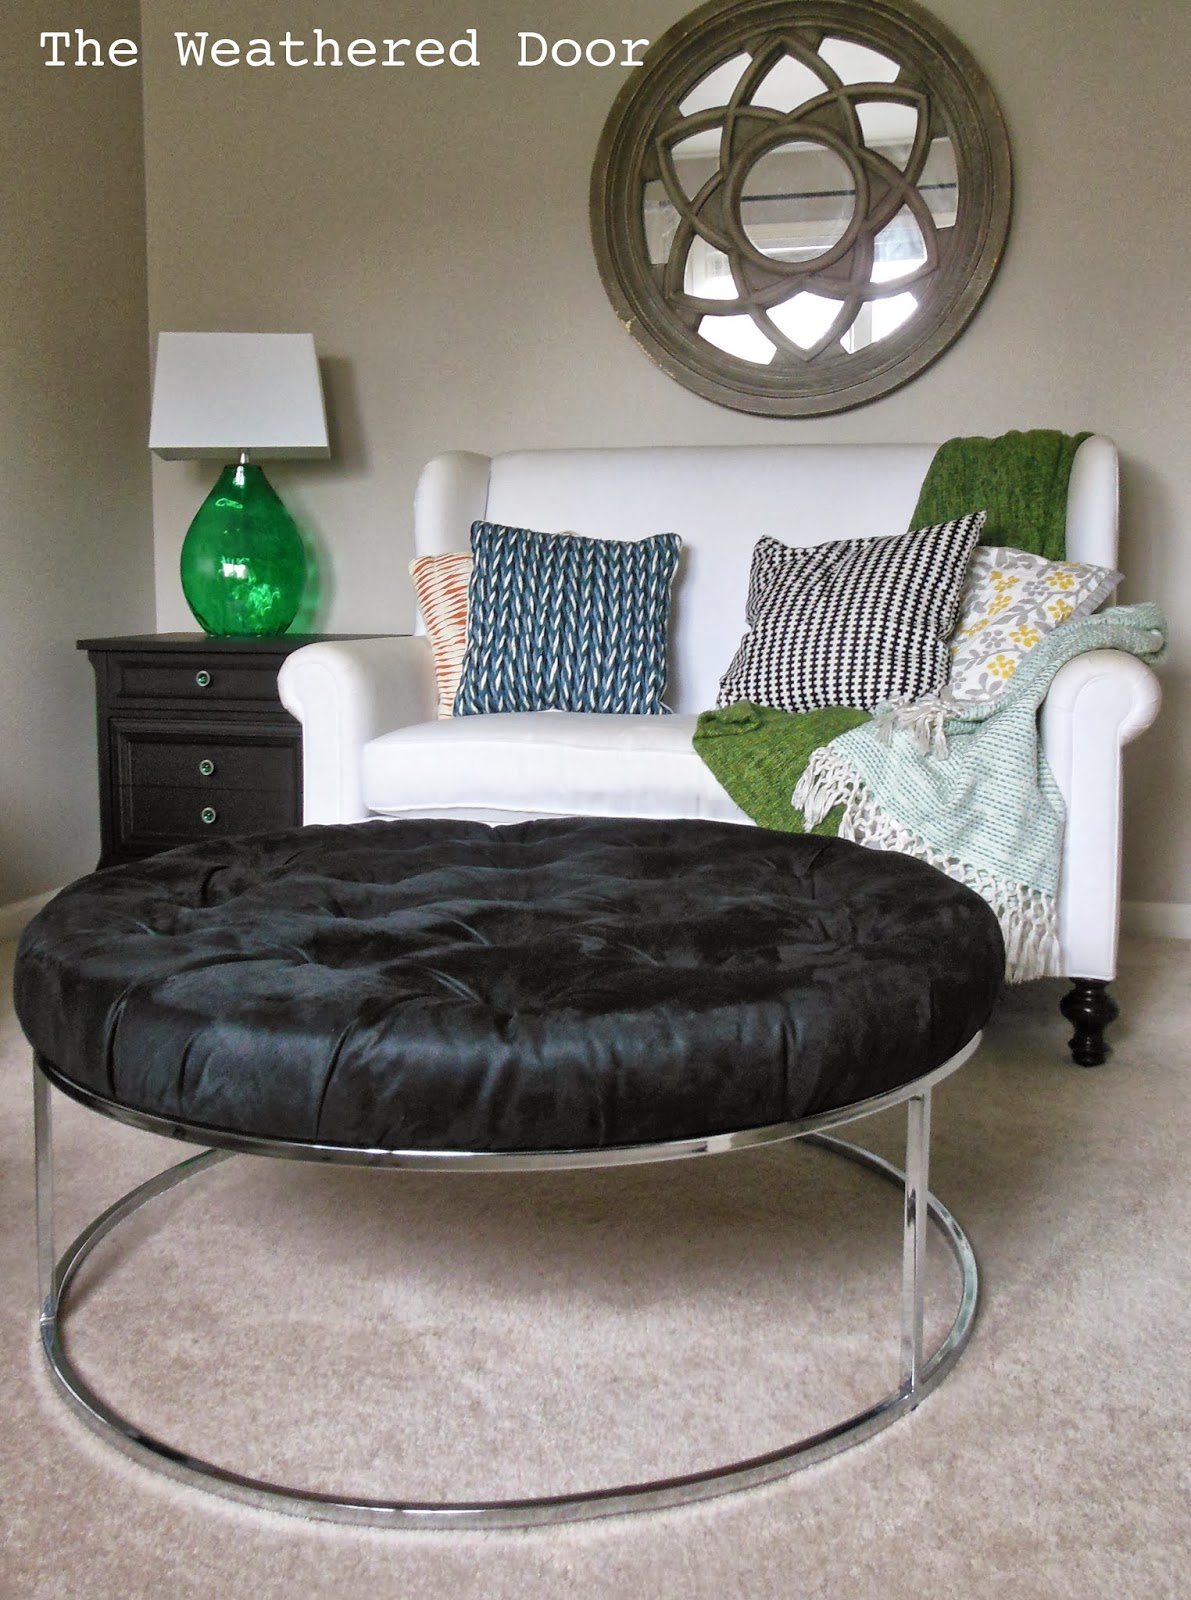 A Round Black Tufted Ottoman With Chrome Base